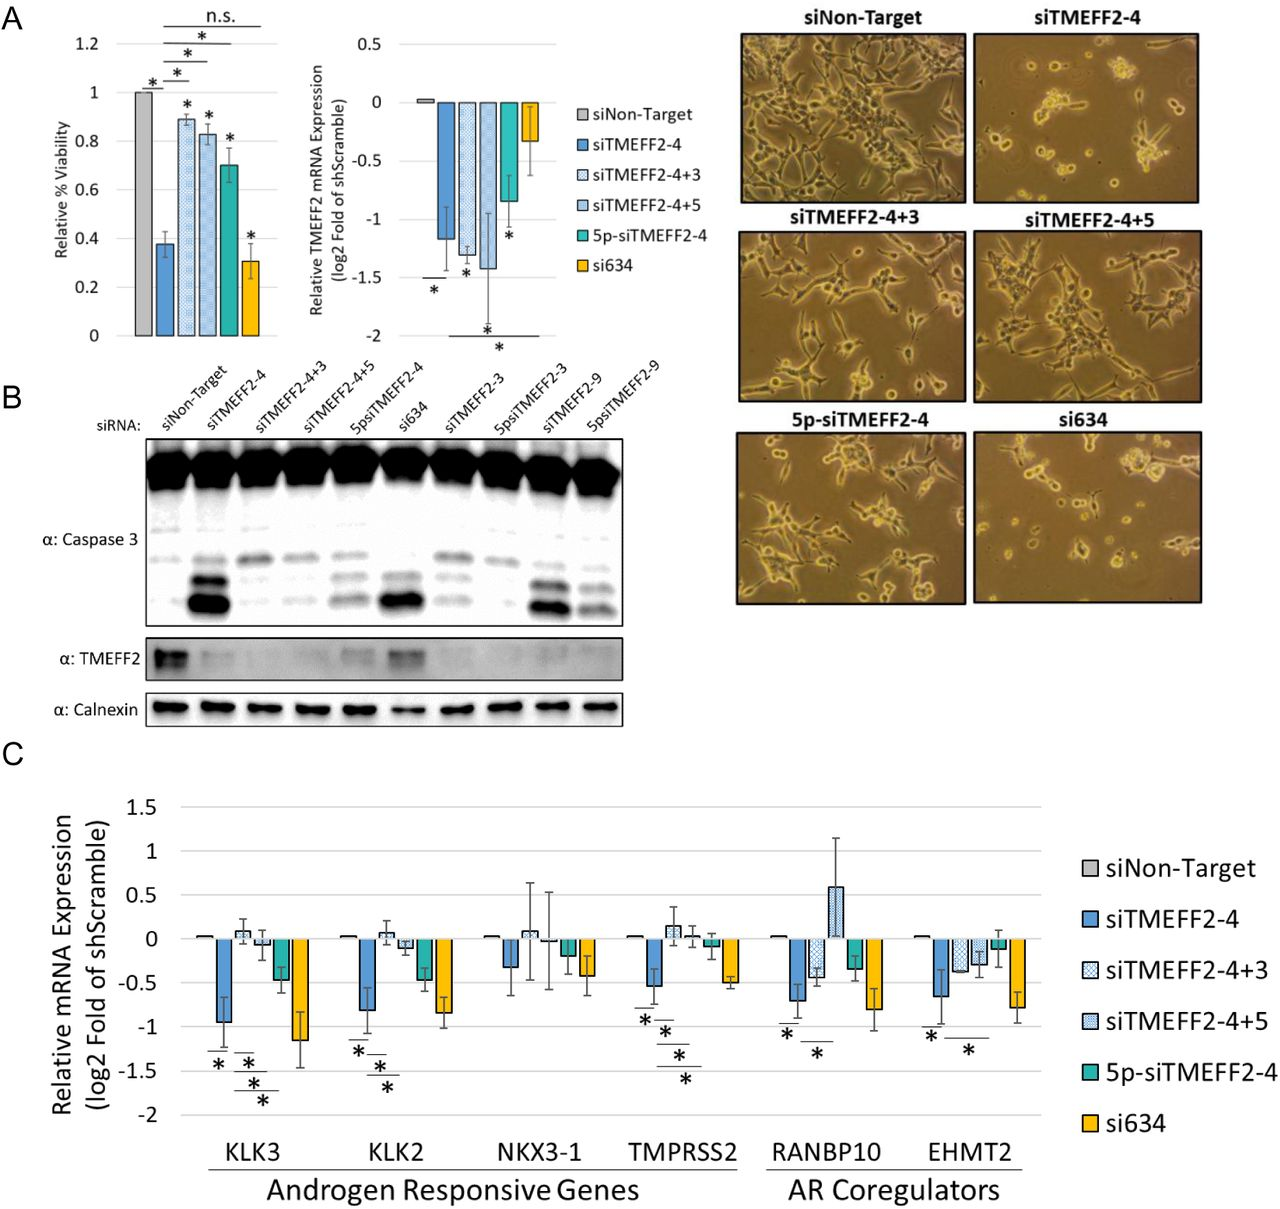 AR coregulatory gene downregulation and decrease in PCa cancer cell viability are shRNA seed mediated. ( A ) Relative percent viability and TMEFF2 mRNA expression in LNCaP cells transfected with siTMEFF2-4 and control siRNAs (siNon-Target; Negative seed controls: siTMEFF2-4+3, siTMEFF2-4+5, 5p-siTMEFF2-4; Positive seed control: si634). 5p designates an ON-Target-Plus modification (Dharmacon) that blocks seed mediated gene downregulation. Cell viability was determined by trypan blue. mRNA expression was determined by RT qPCR using RPL8, RPL38, PSMA1 and PPP2CA housekeeping genes for normalization. Viability measurements, cell pictures and RNA extractions were done 72 hours after <t>siRNA</t> <t>transfections</t> N=4, error bars ±SD, * p